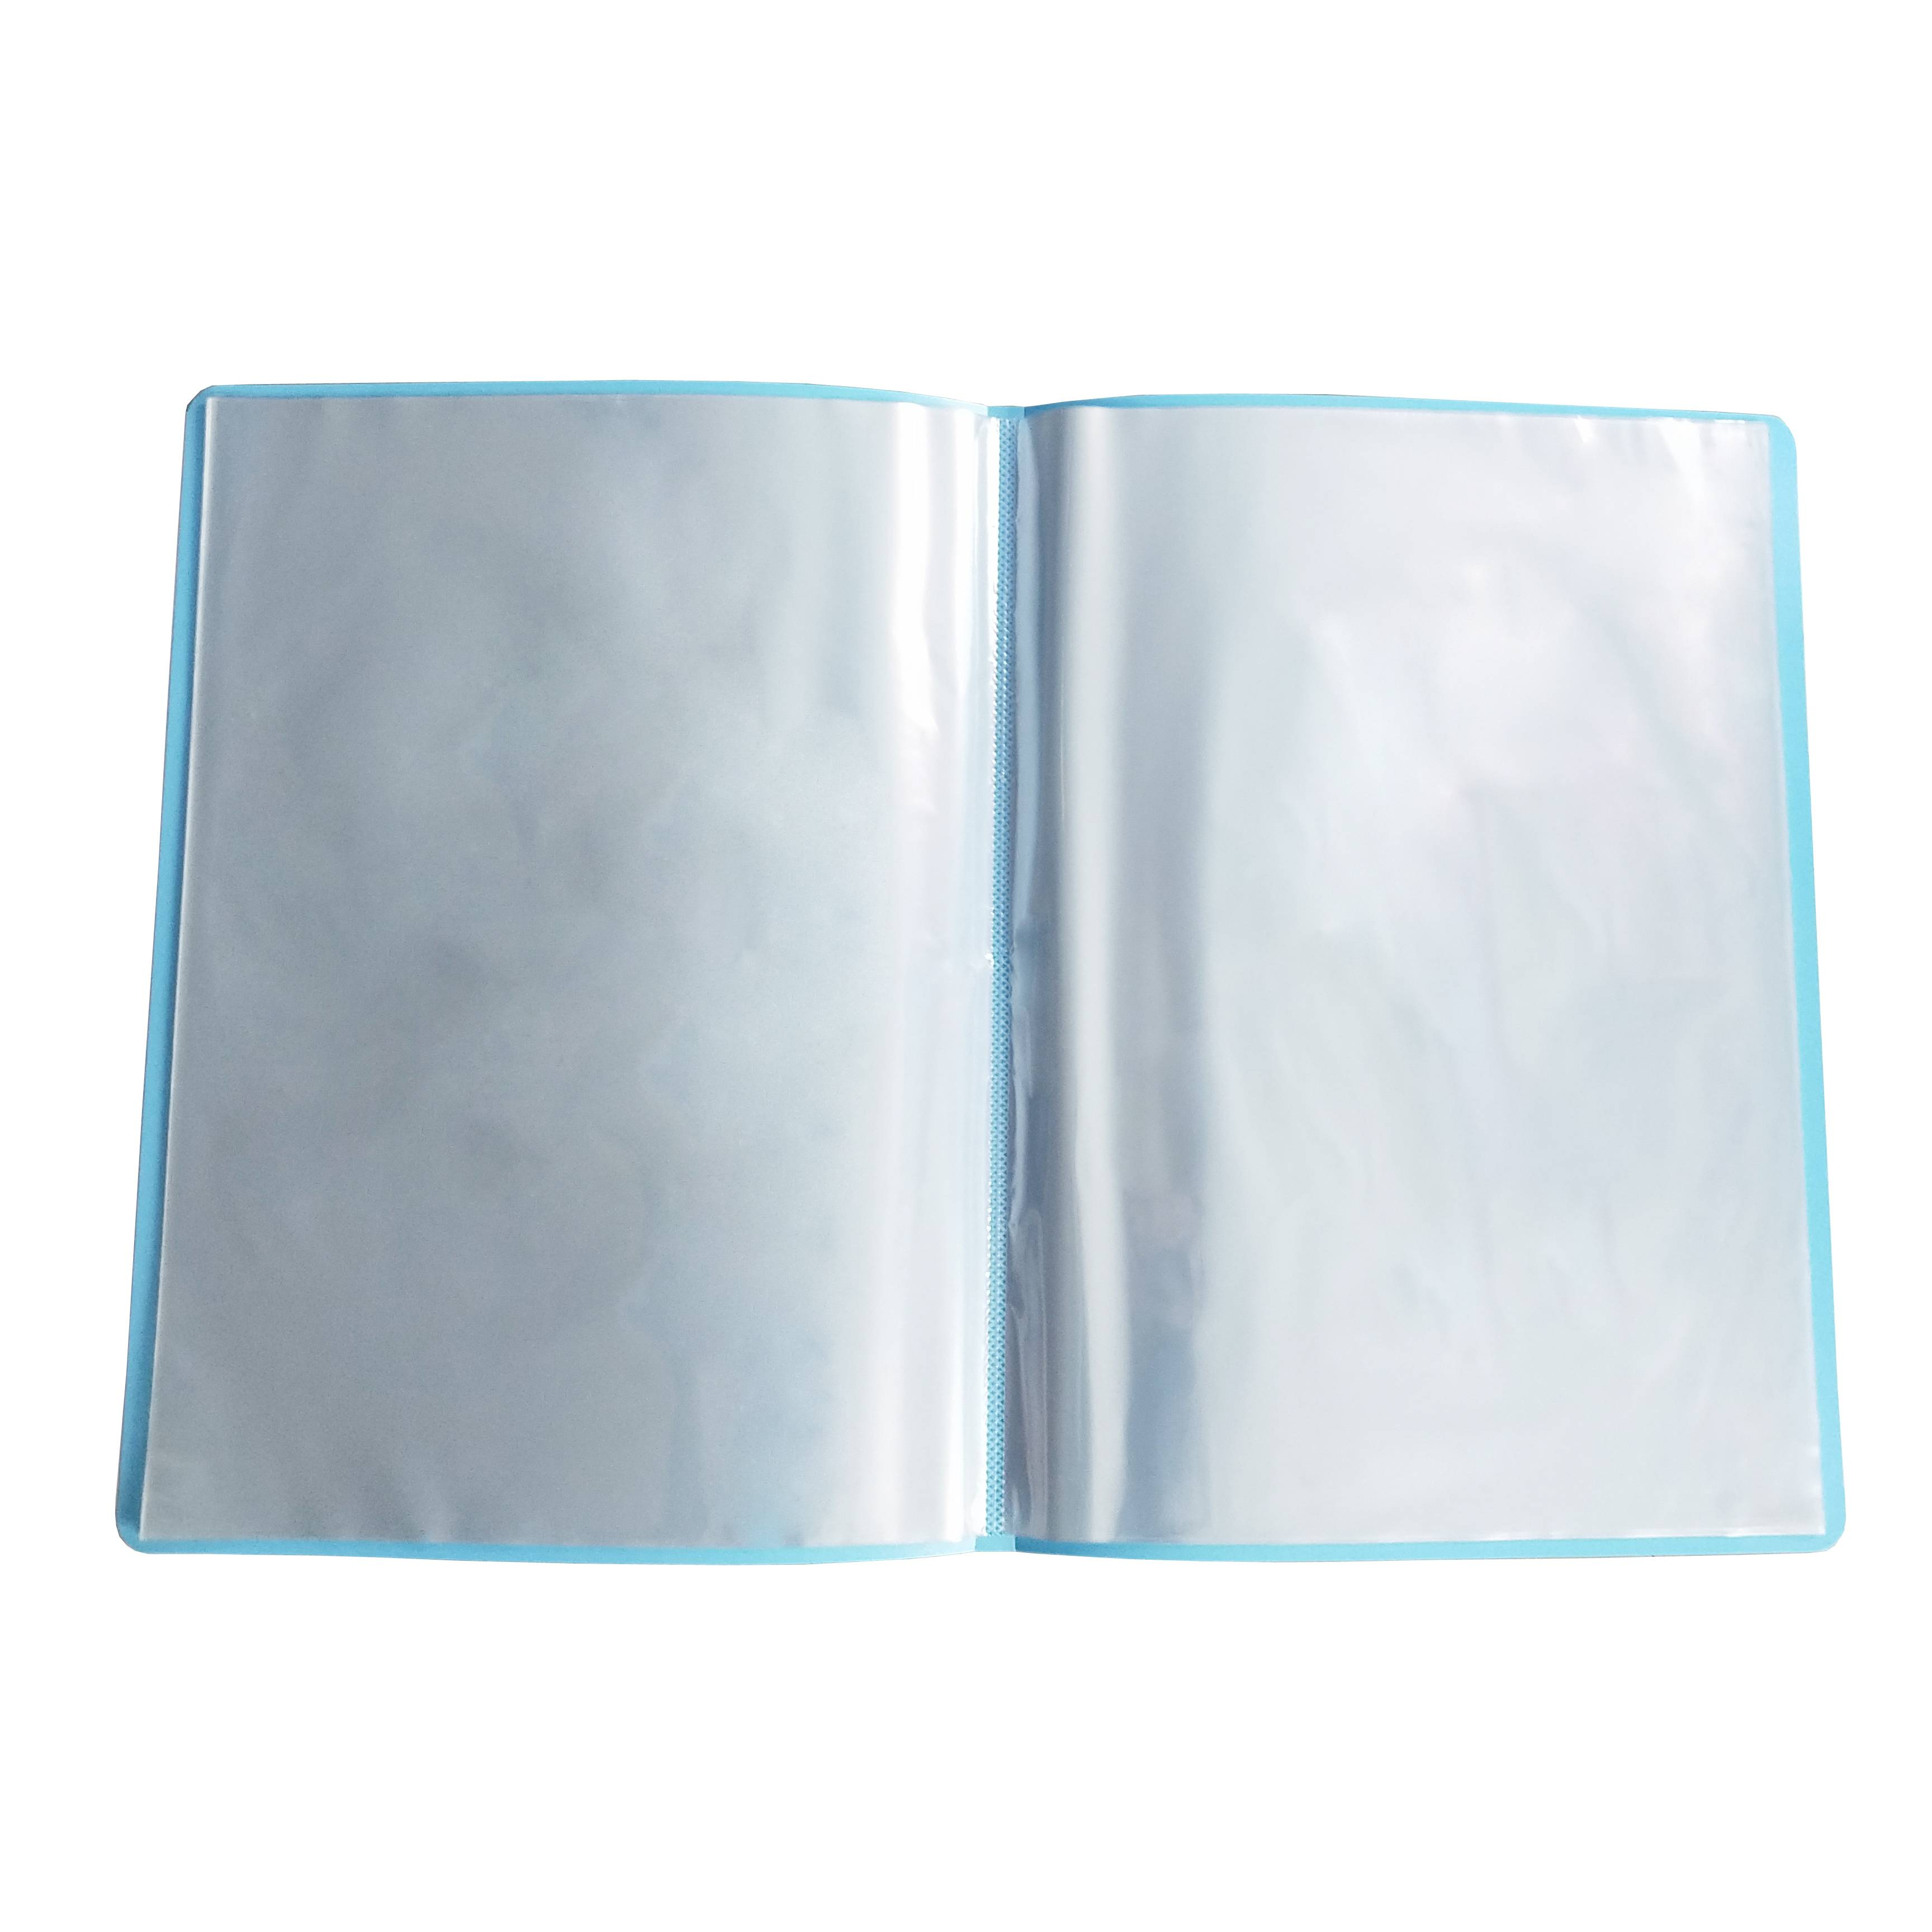 A1 size 26 Pocket Protector Presentation File Folder Display Book Clear Sheets for Report Sheets,Artworks,Music Sheets